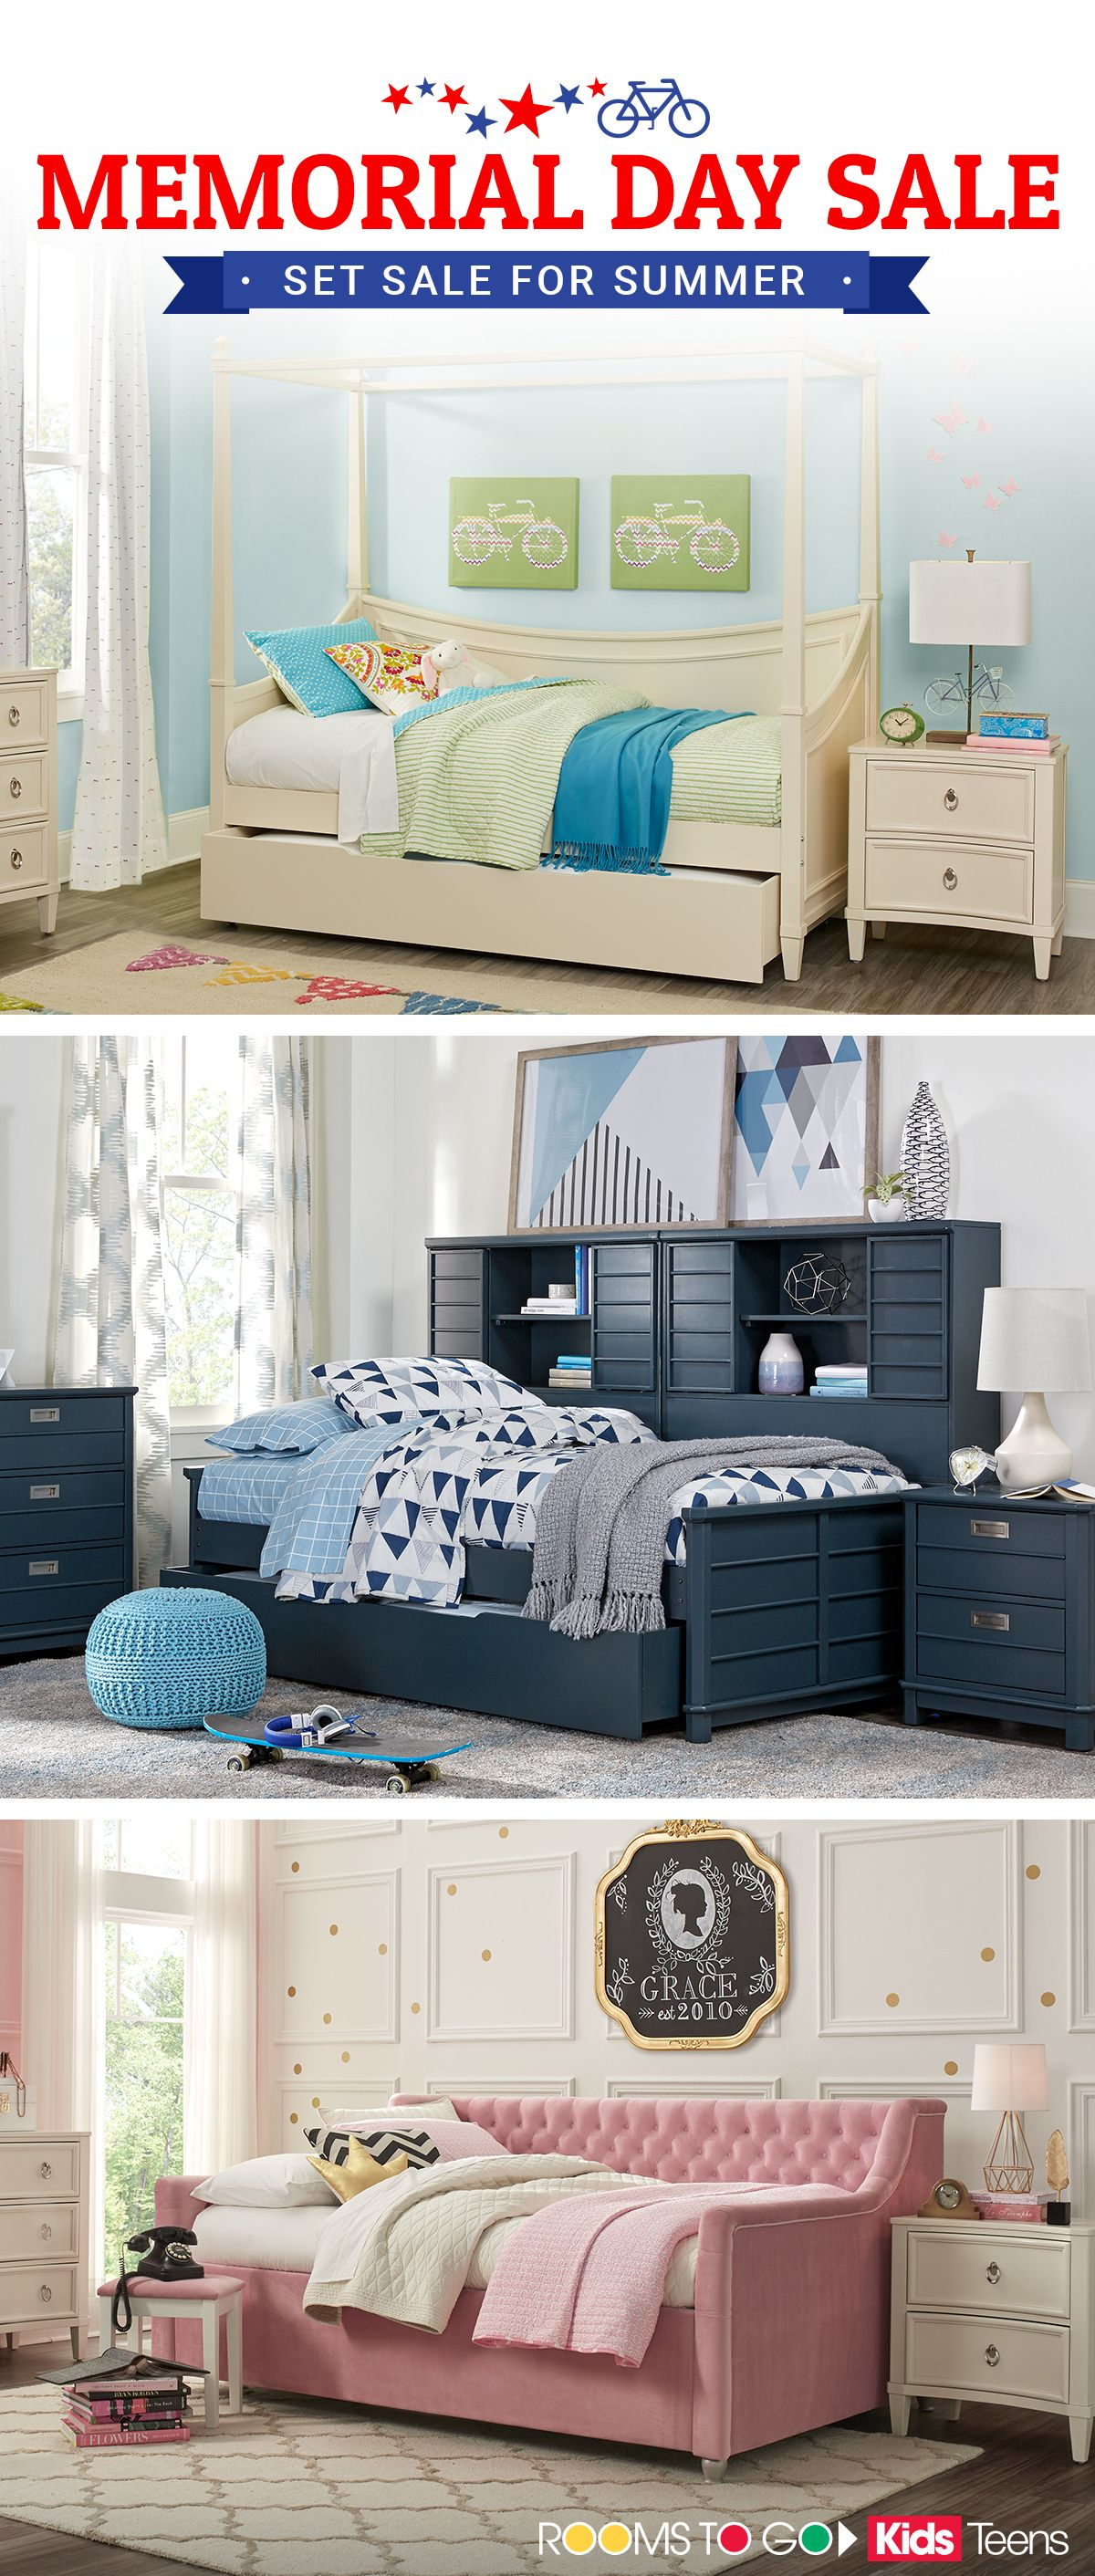 Set Sale For Summer With Great Savings On Girls Rooms Boys Rooms